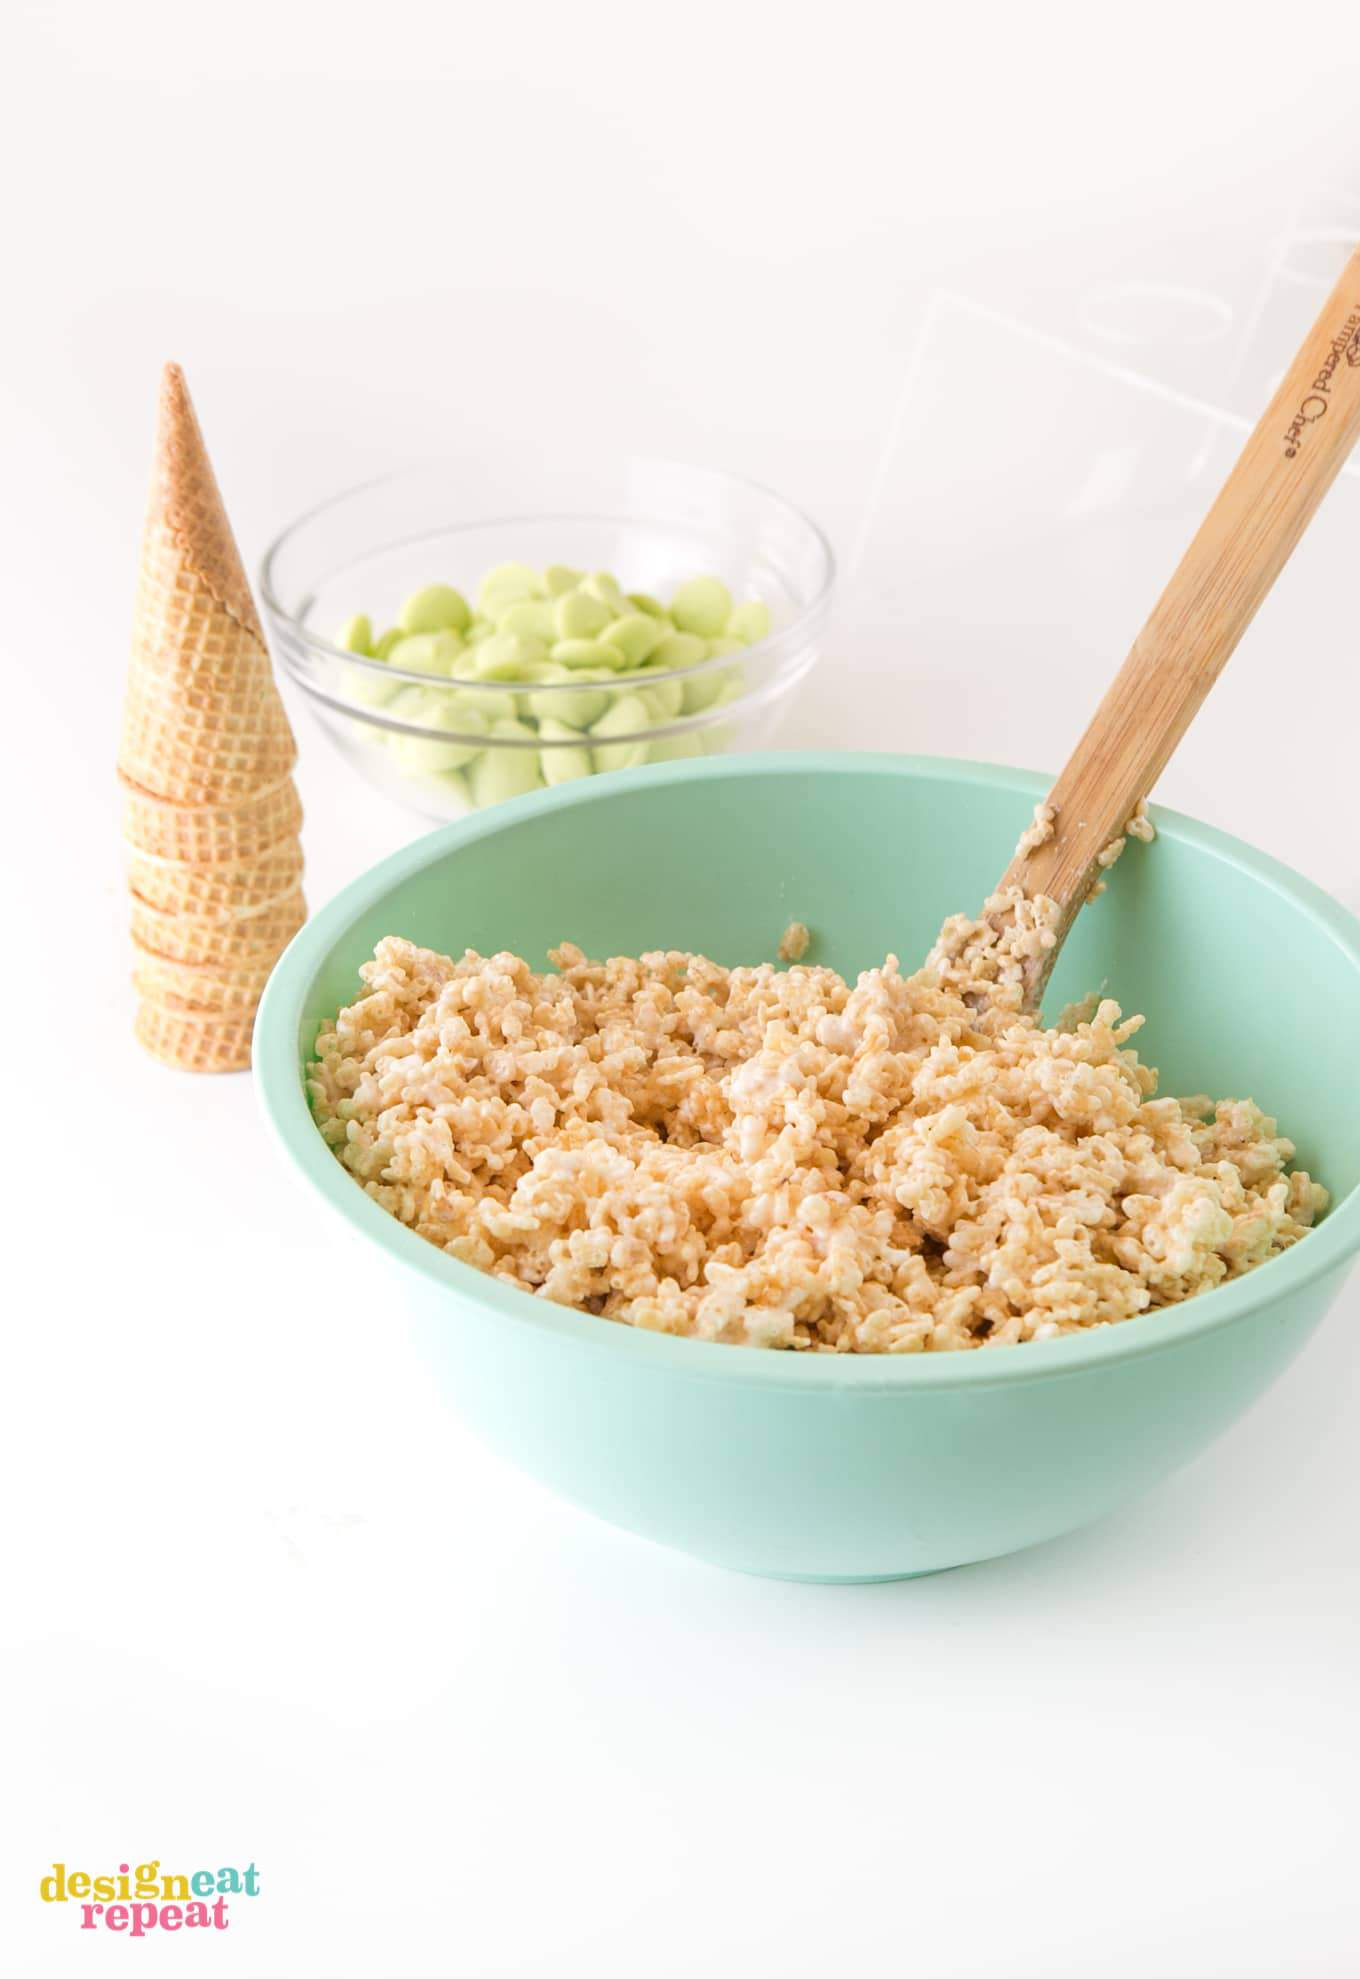 mixing rice krispy cereal treats with wooden spoon in large blue bowl